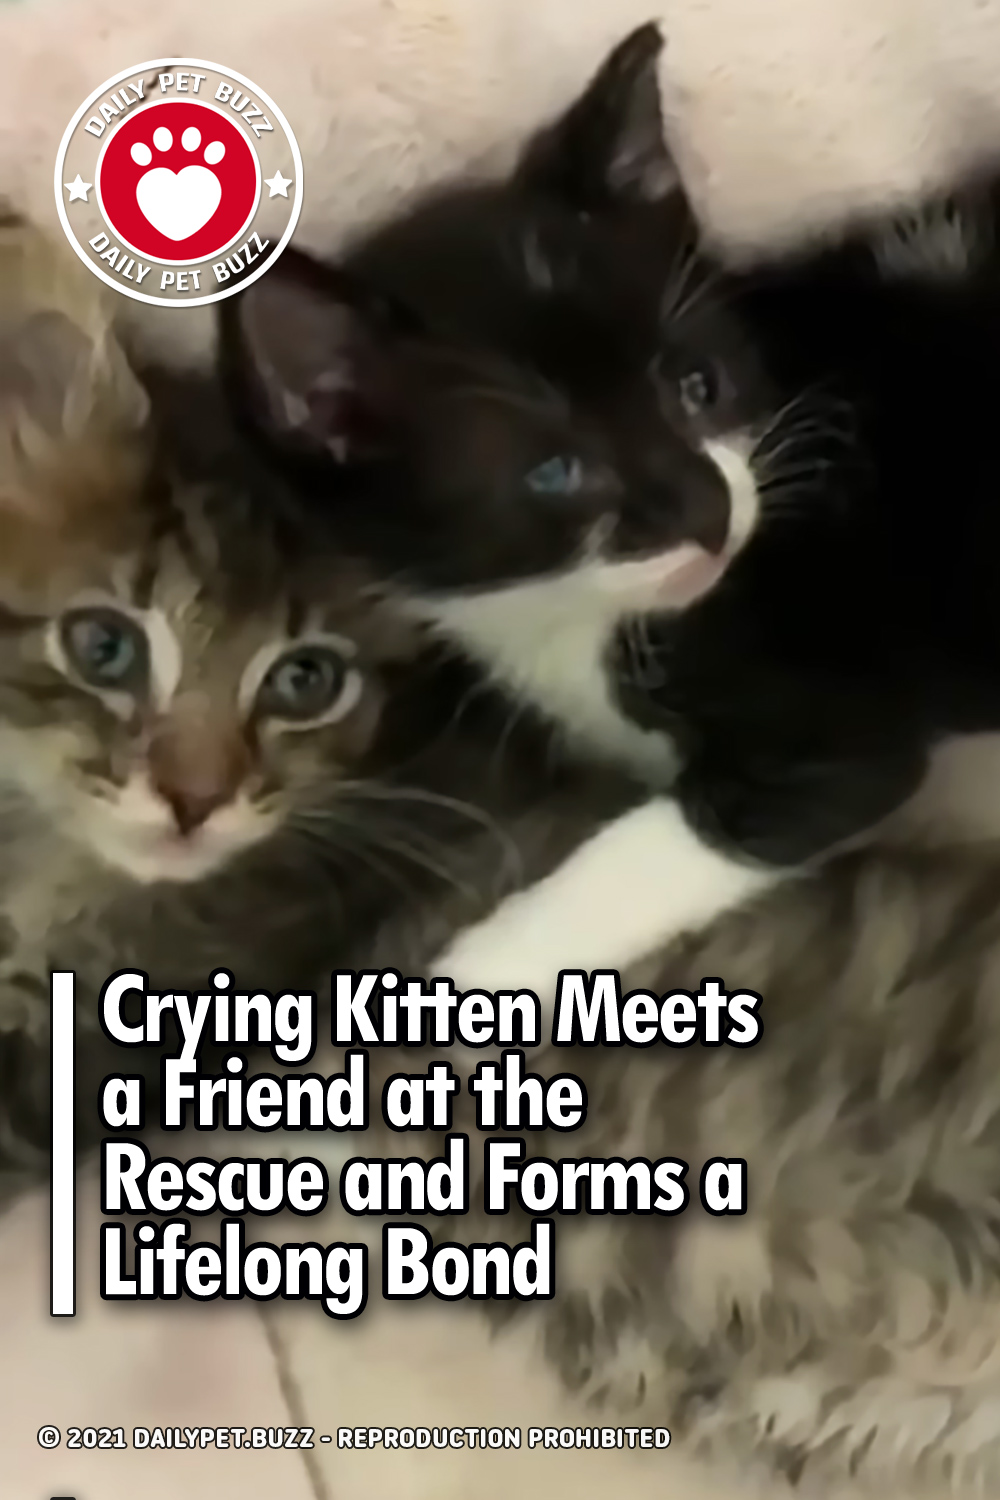 Crying Kitten Meets a Friend at the Rescue and Forms a Lifelong Bond